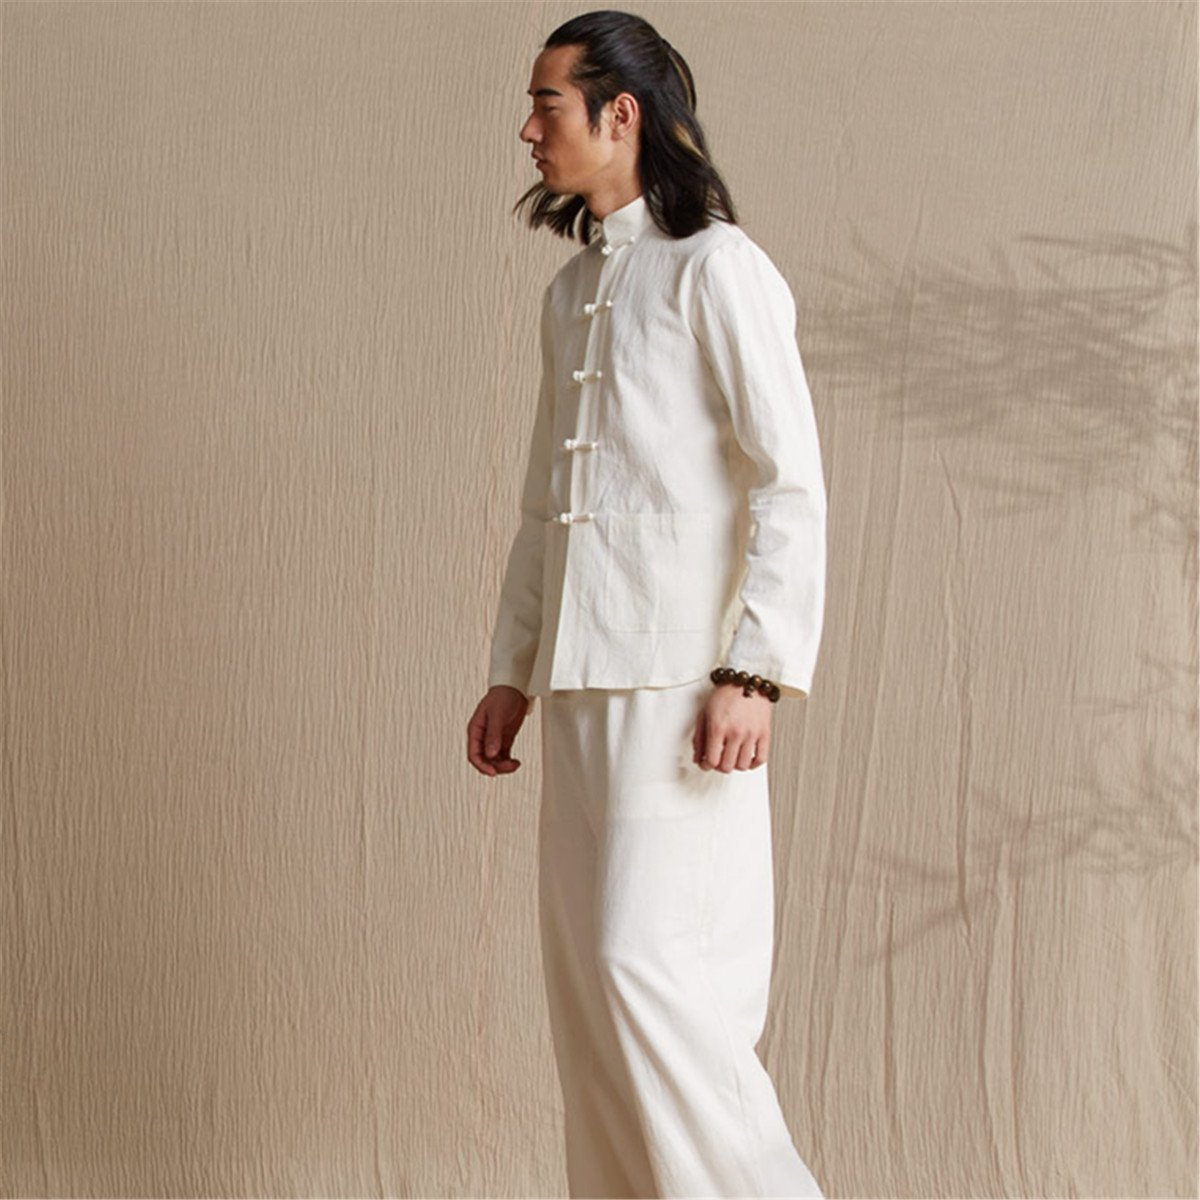 WEISAN Men Chinese Retro Stand Collar Tang Suit Cotton Linen Kung Fu Costume Jacket by WEISAN (Image #6)